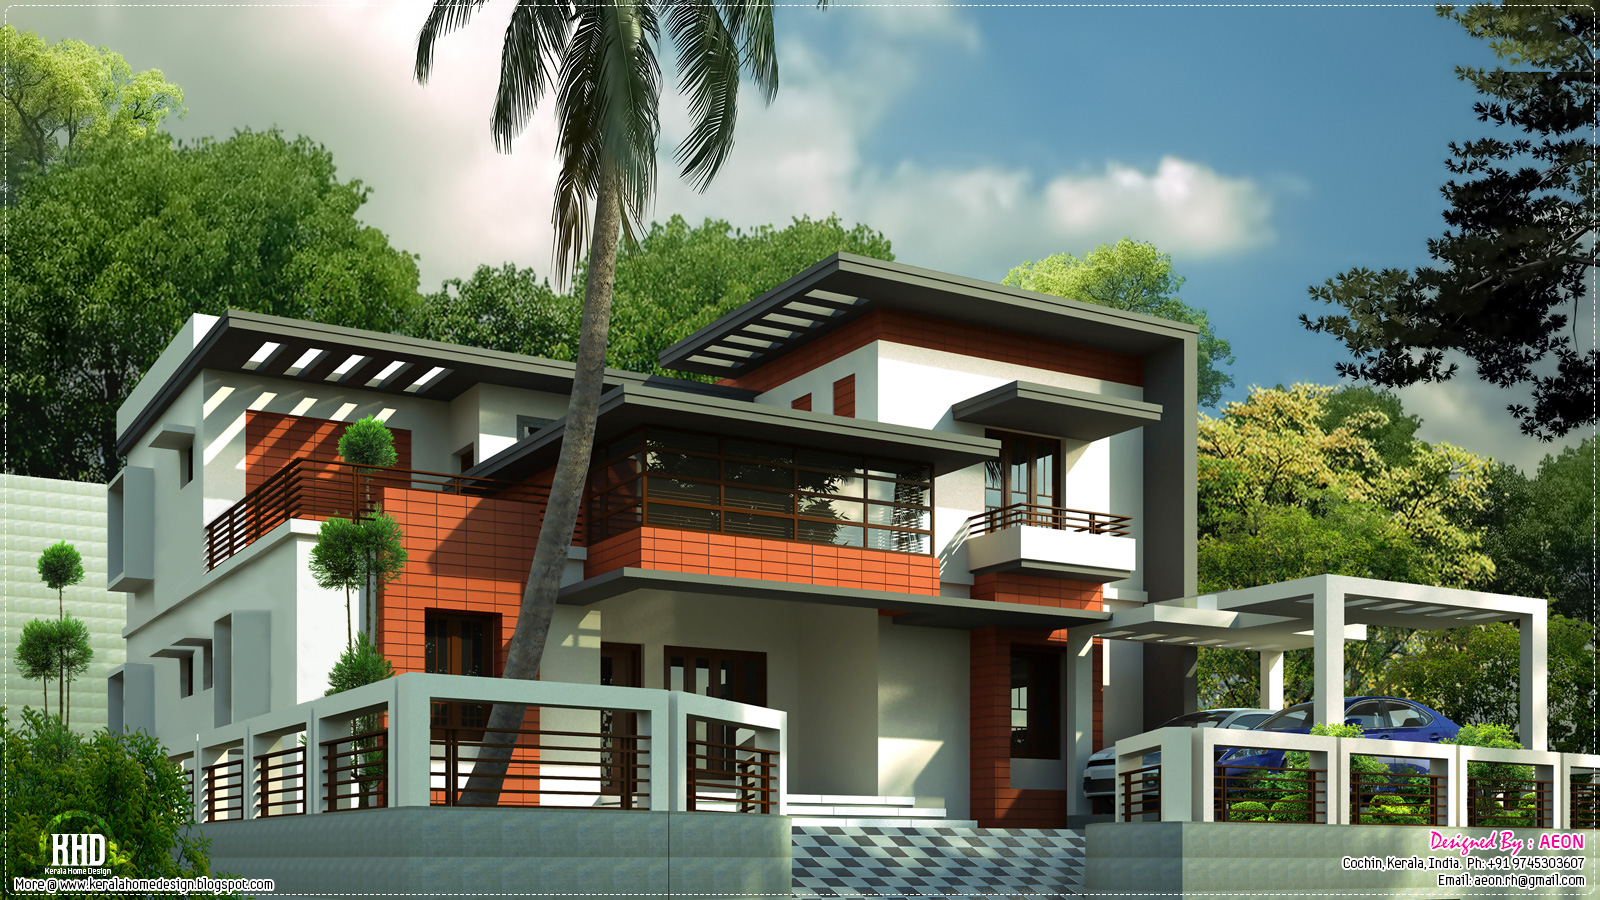 3400 sq feet contemporary home design kerala home for Kerala modern house designs